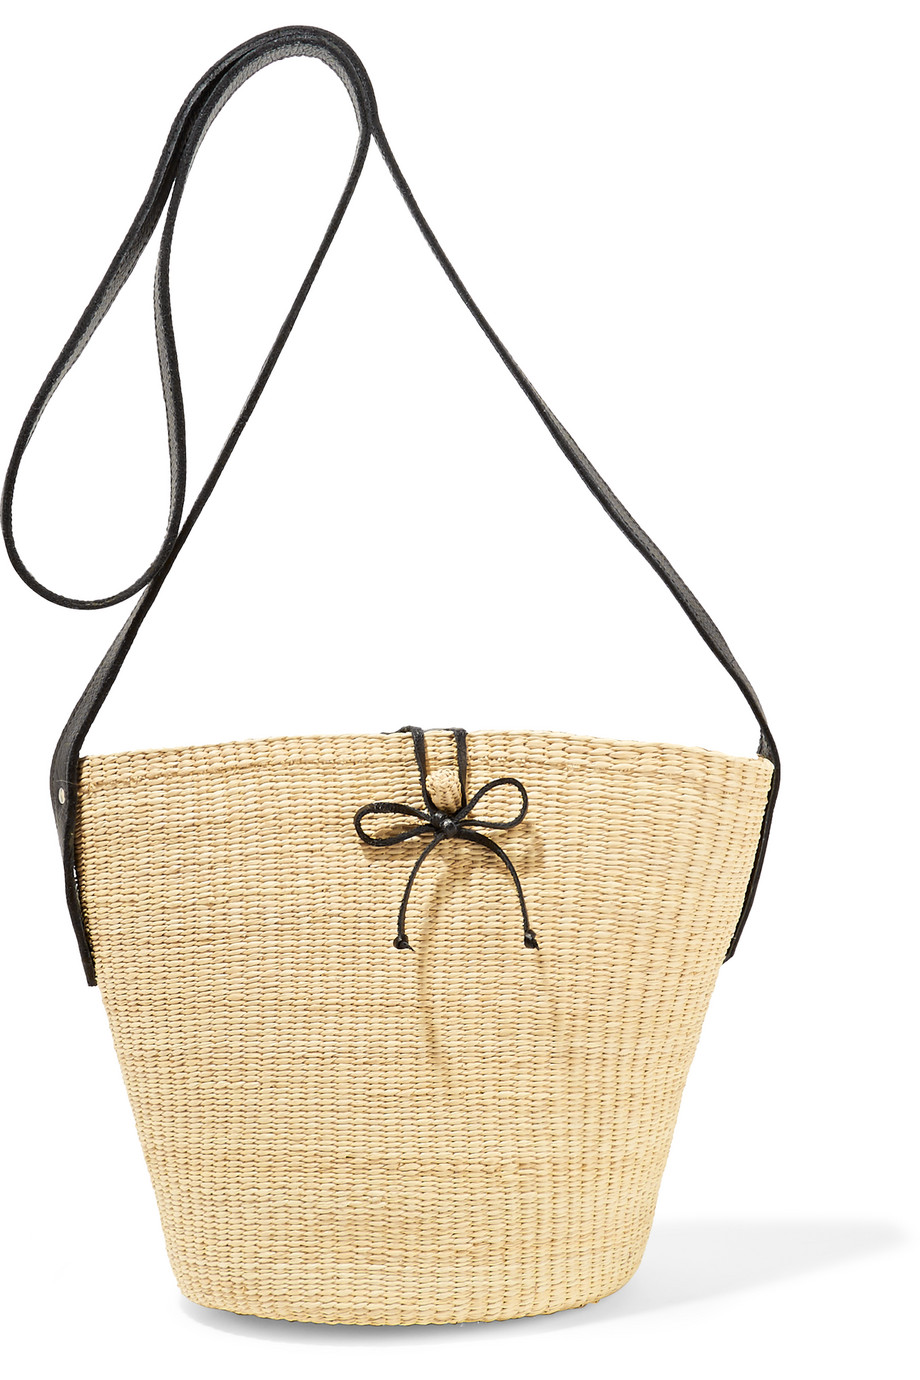 Sensi Studio Leather-Trimmed Woven Toquilla Straw Shoulder Bag, Cream, Women's